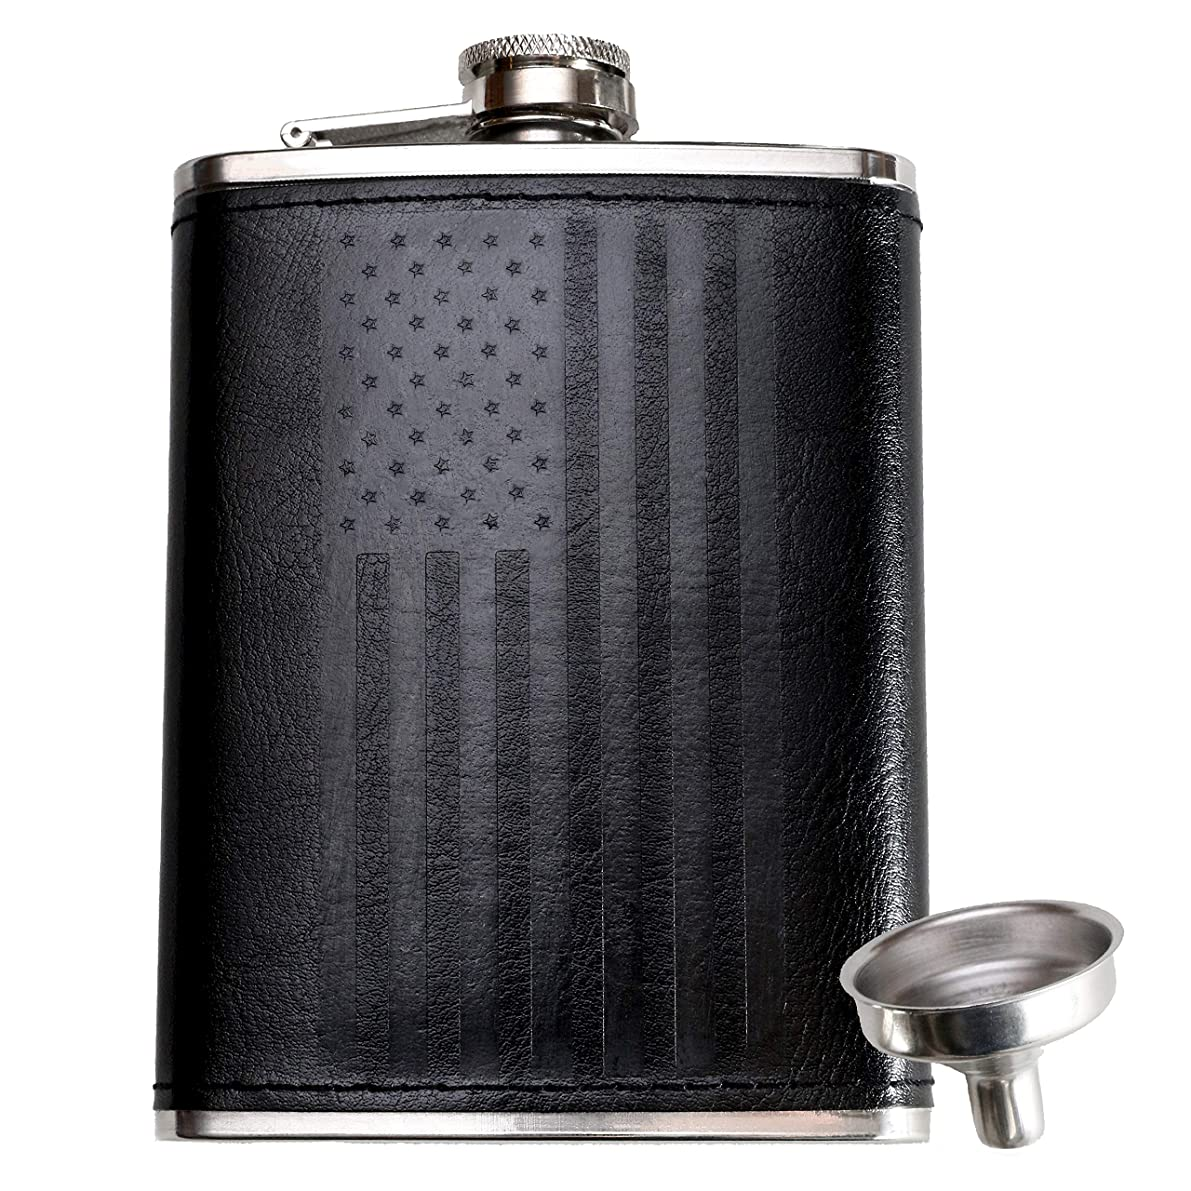 Leather Flask With American Flag By Home Aggressive - 8oz - 18/8 304 Stainless Steel Black Leather Wrap Hip Flask With Funnel For Liquor Whiskey Water Alcohol Wine Or Bourbon - Slim Curved